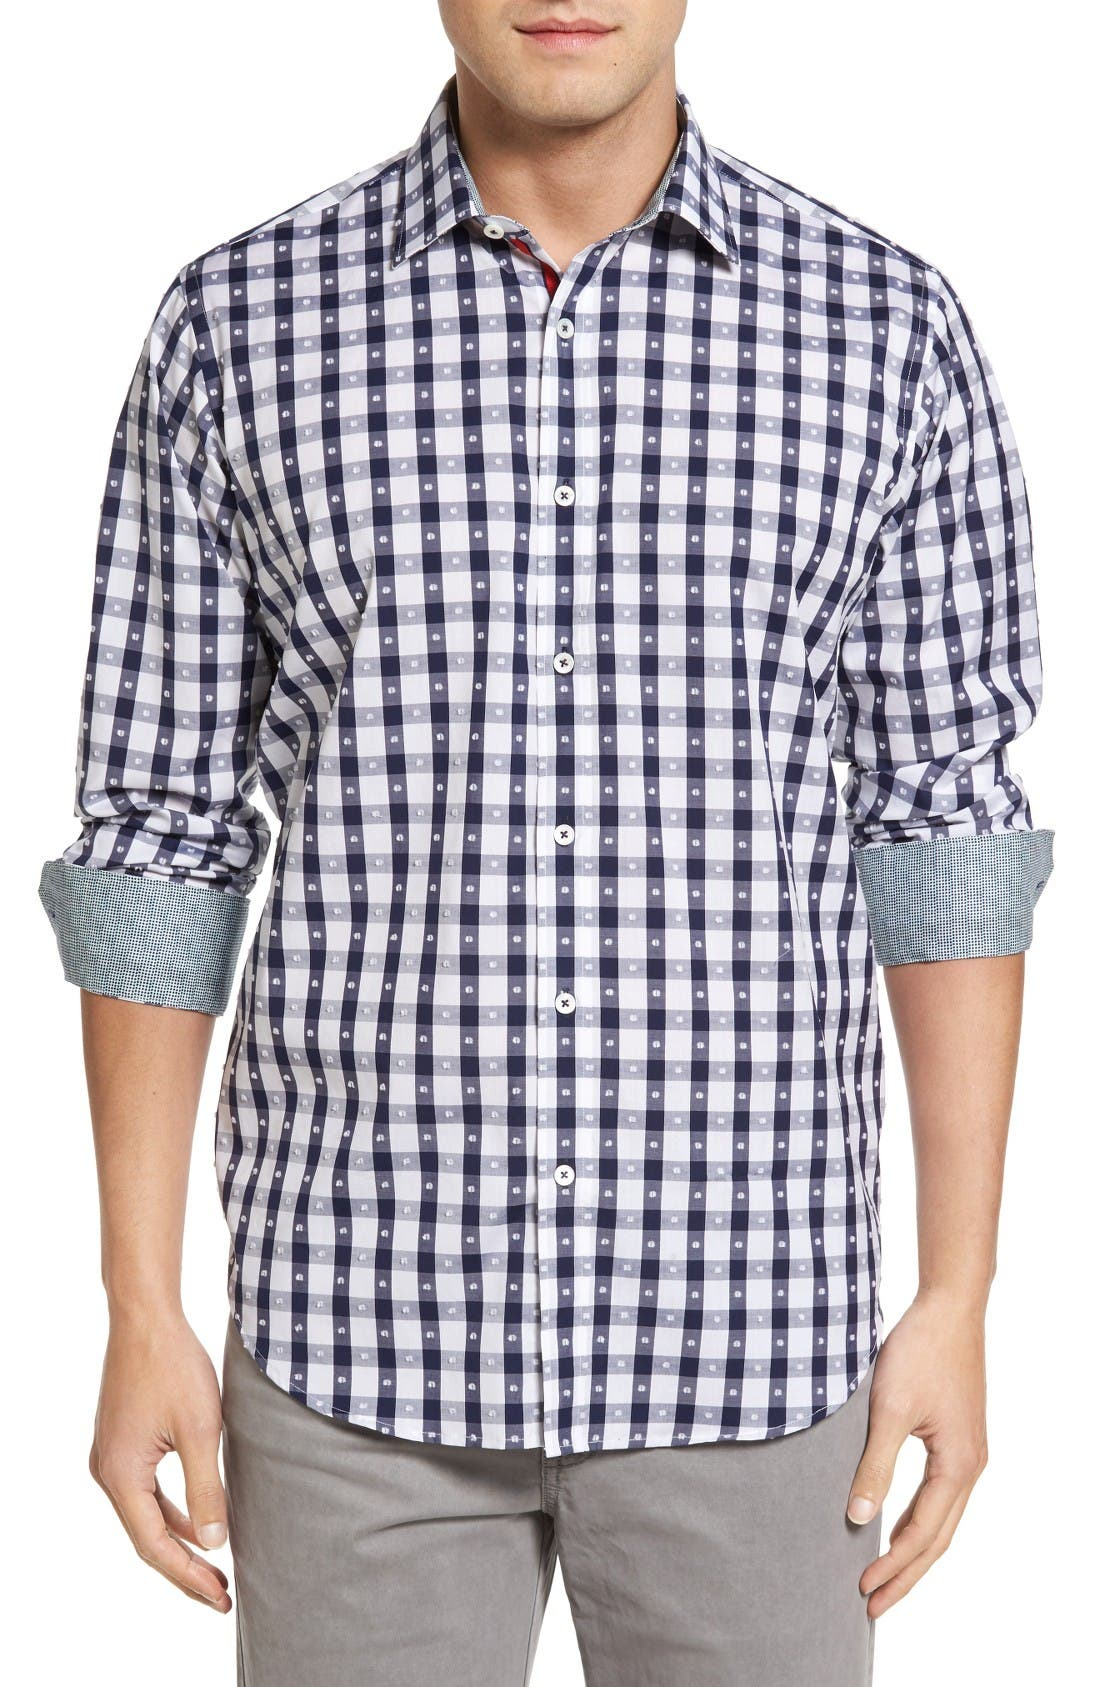 Alternate Image 1 Selected - Bugatchi Classic Fit Dot & Gingham Check Sport Shirt